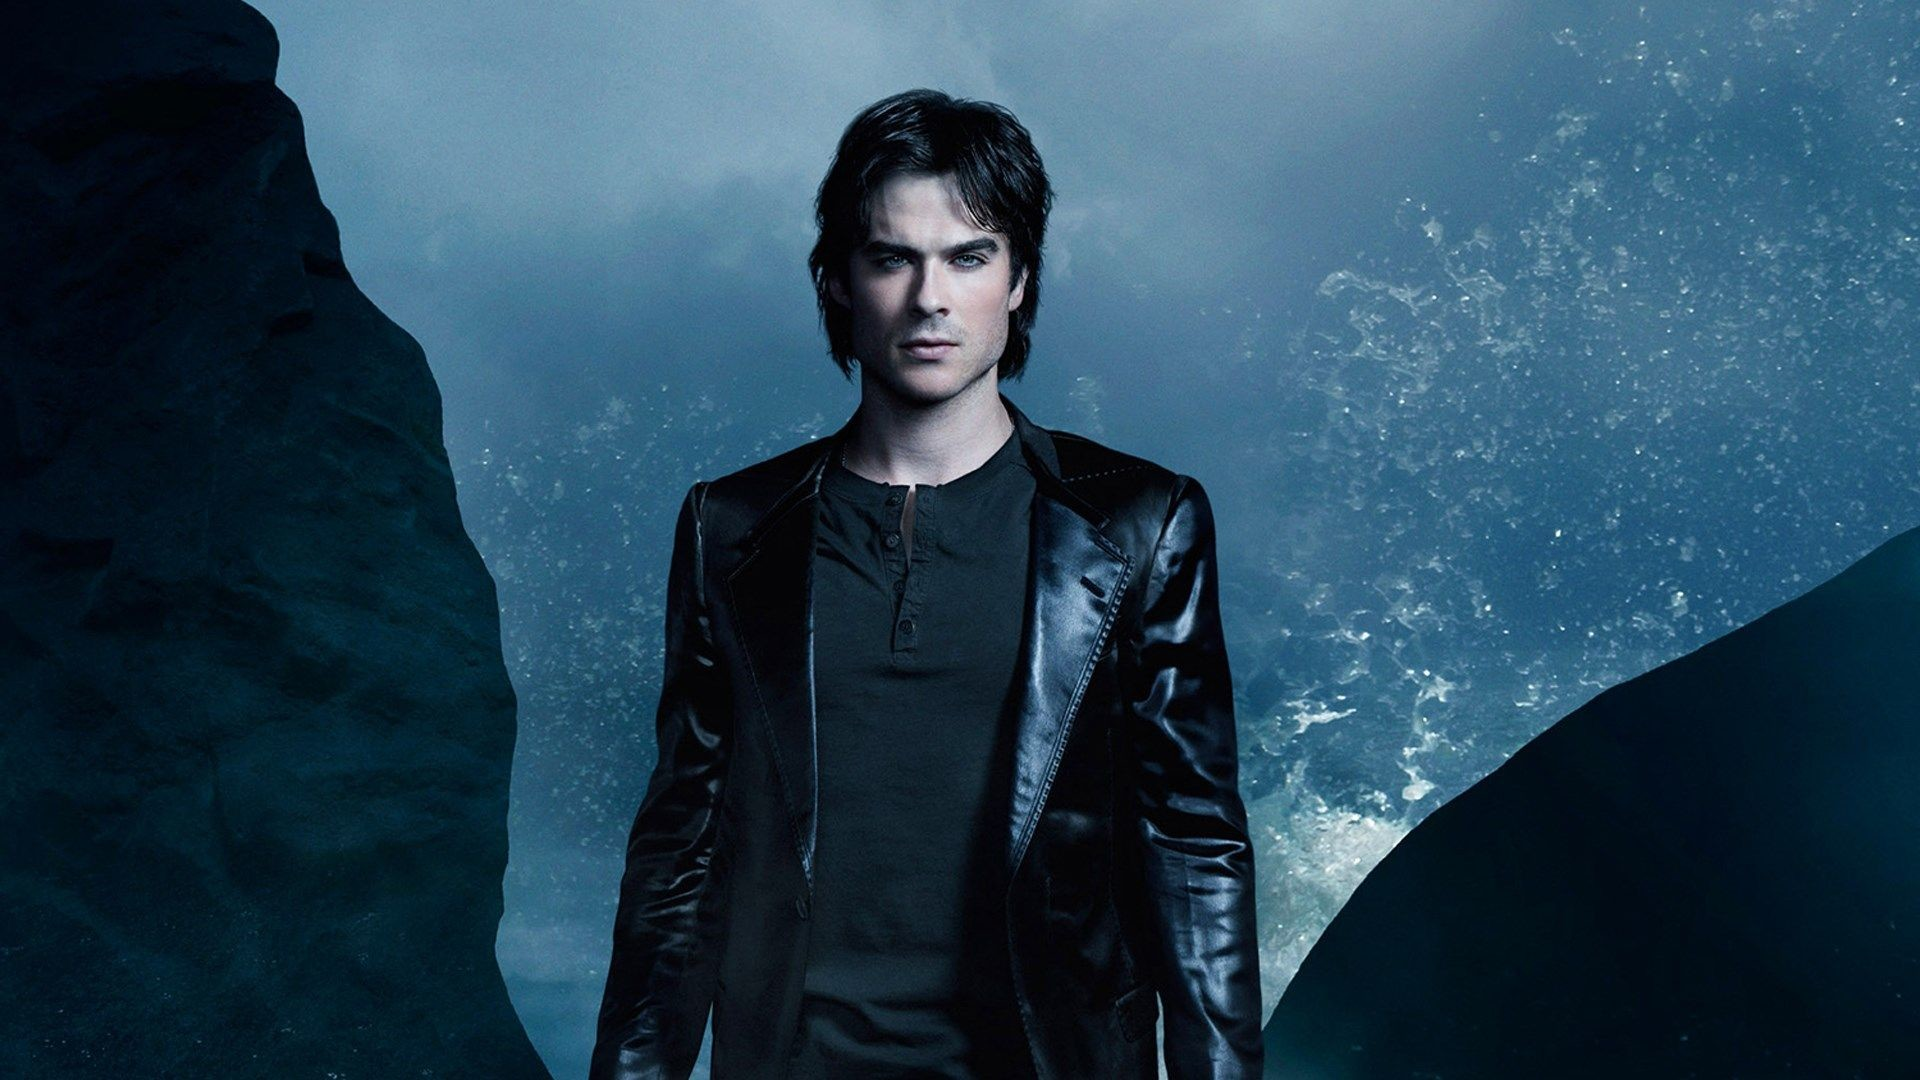 Res: 1920x1080, wallpapers for background ian somerhalder in high resolution